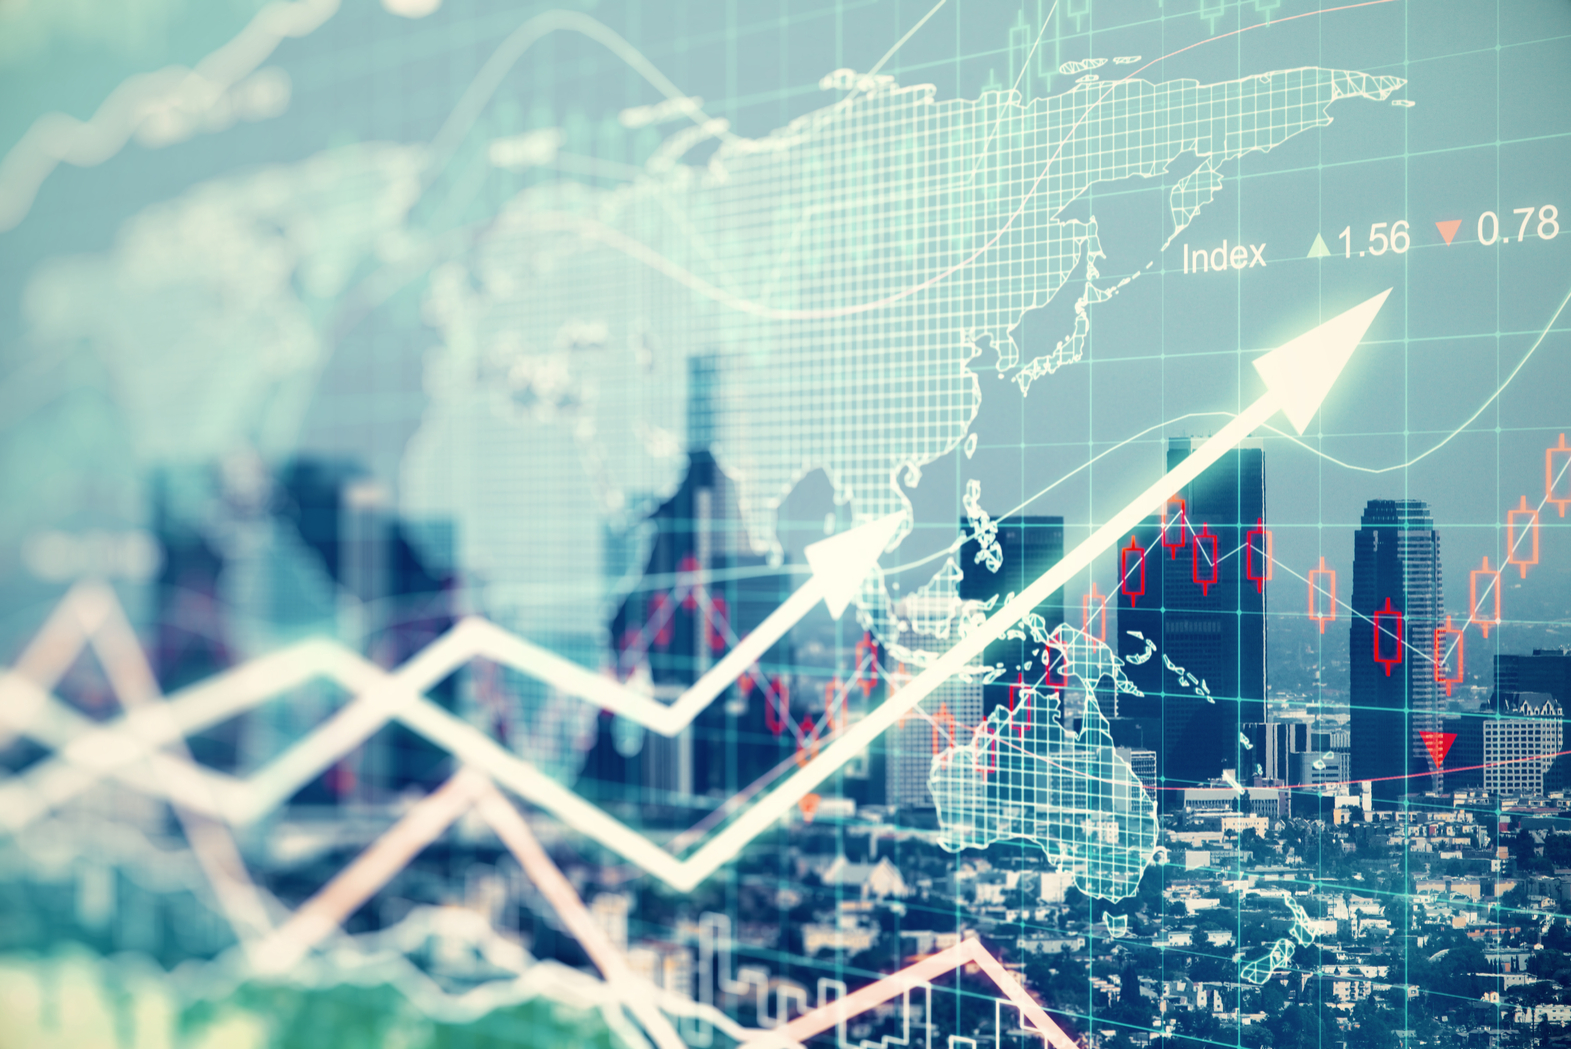 Financial services industry M&A deals in September 2020 total $8.61bn globally